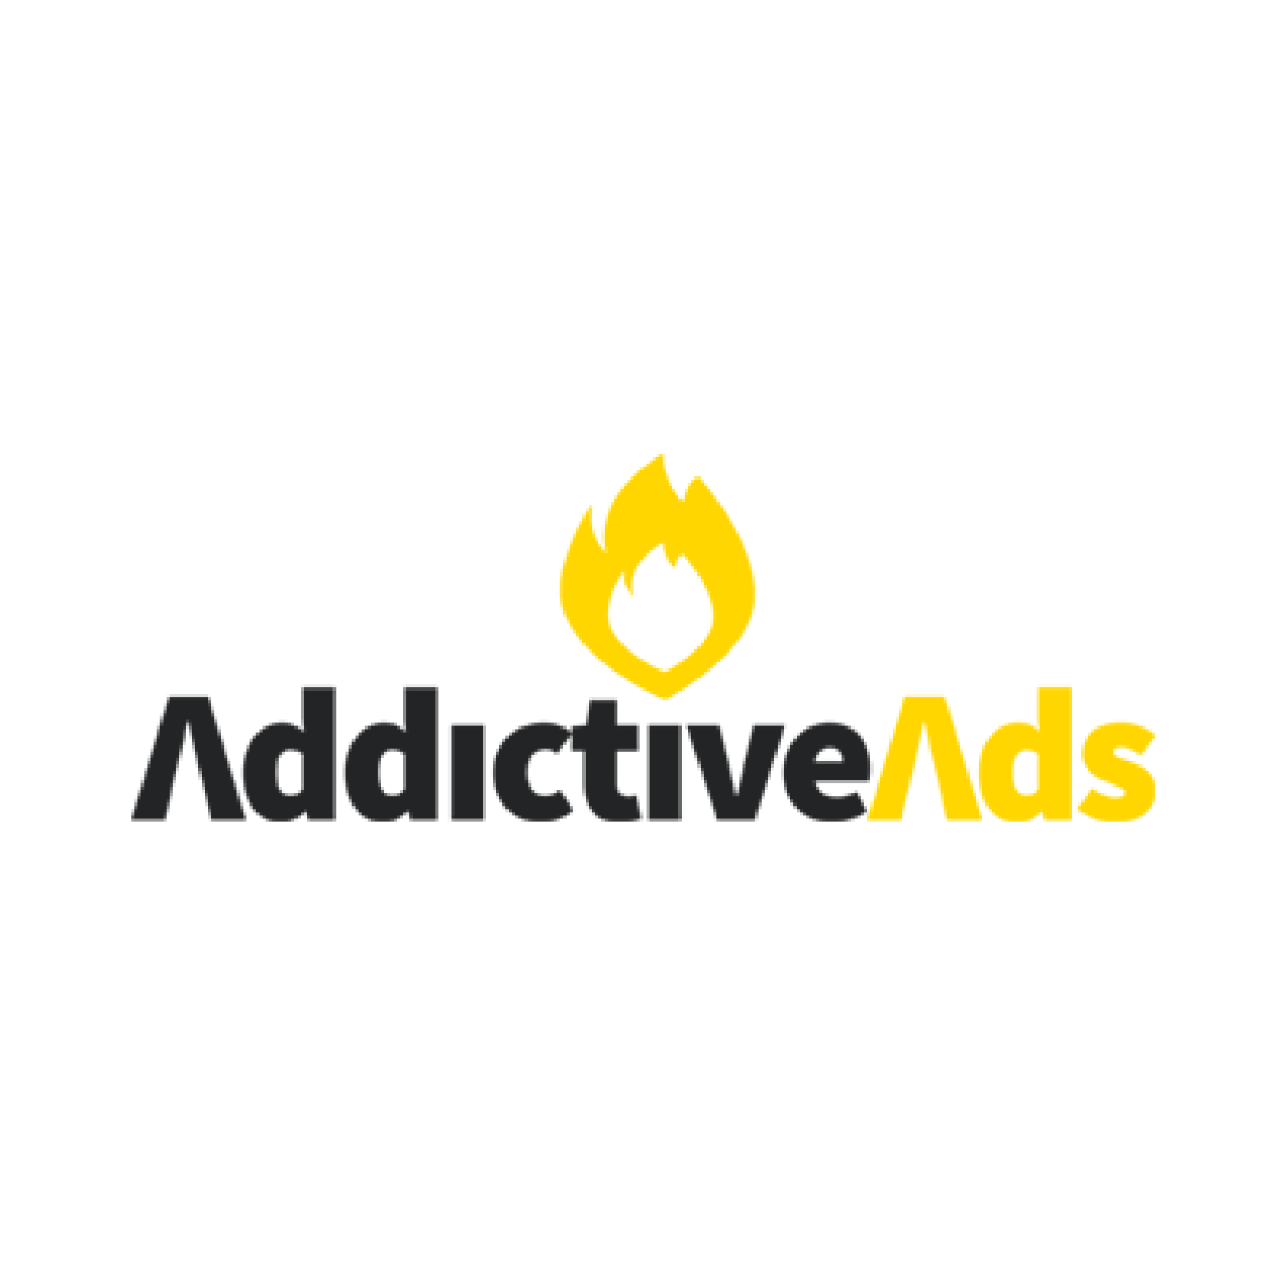 Addictive Ads